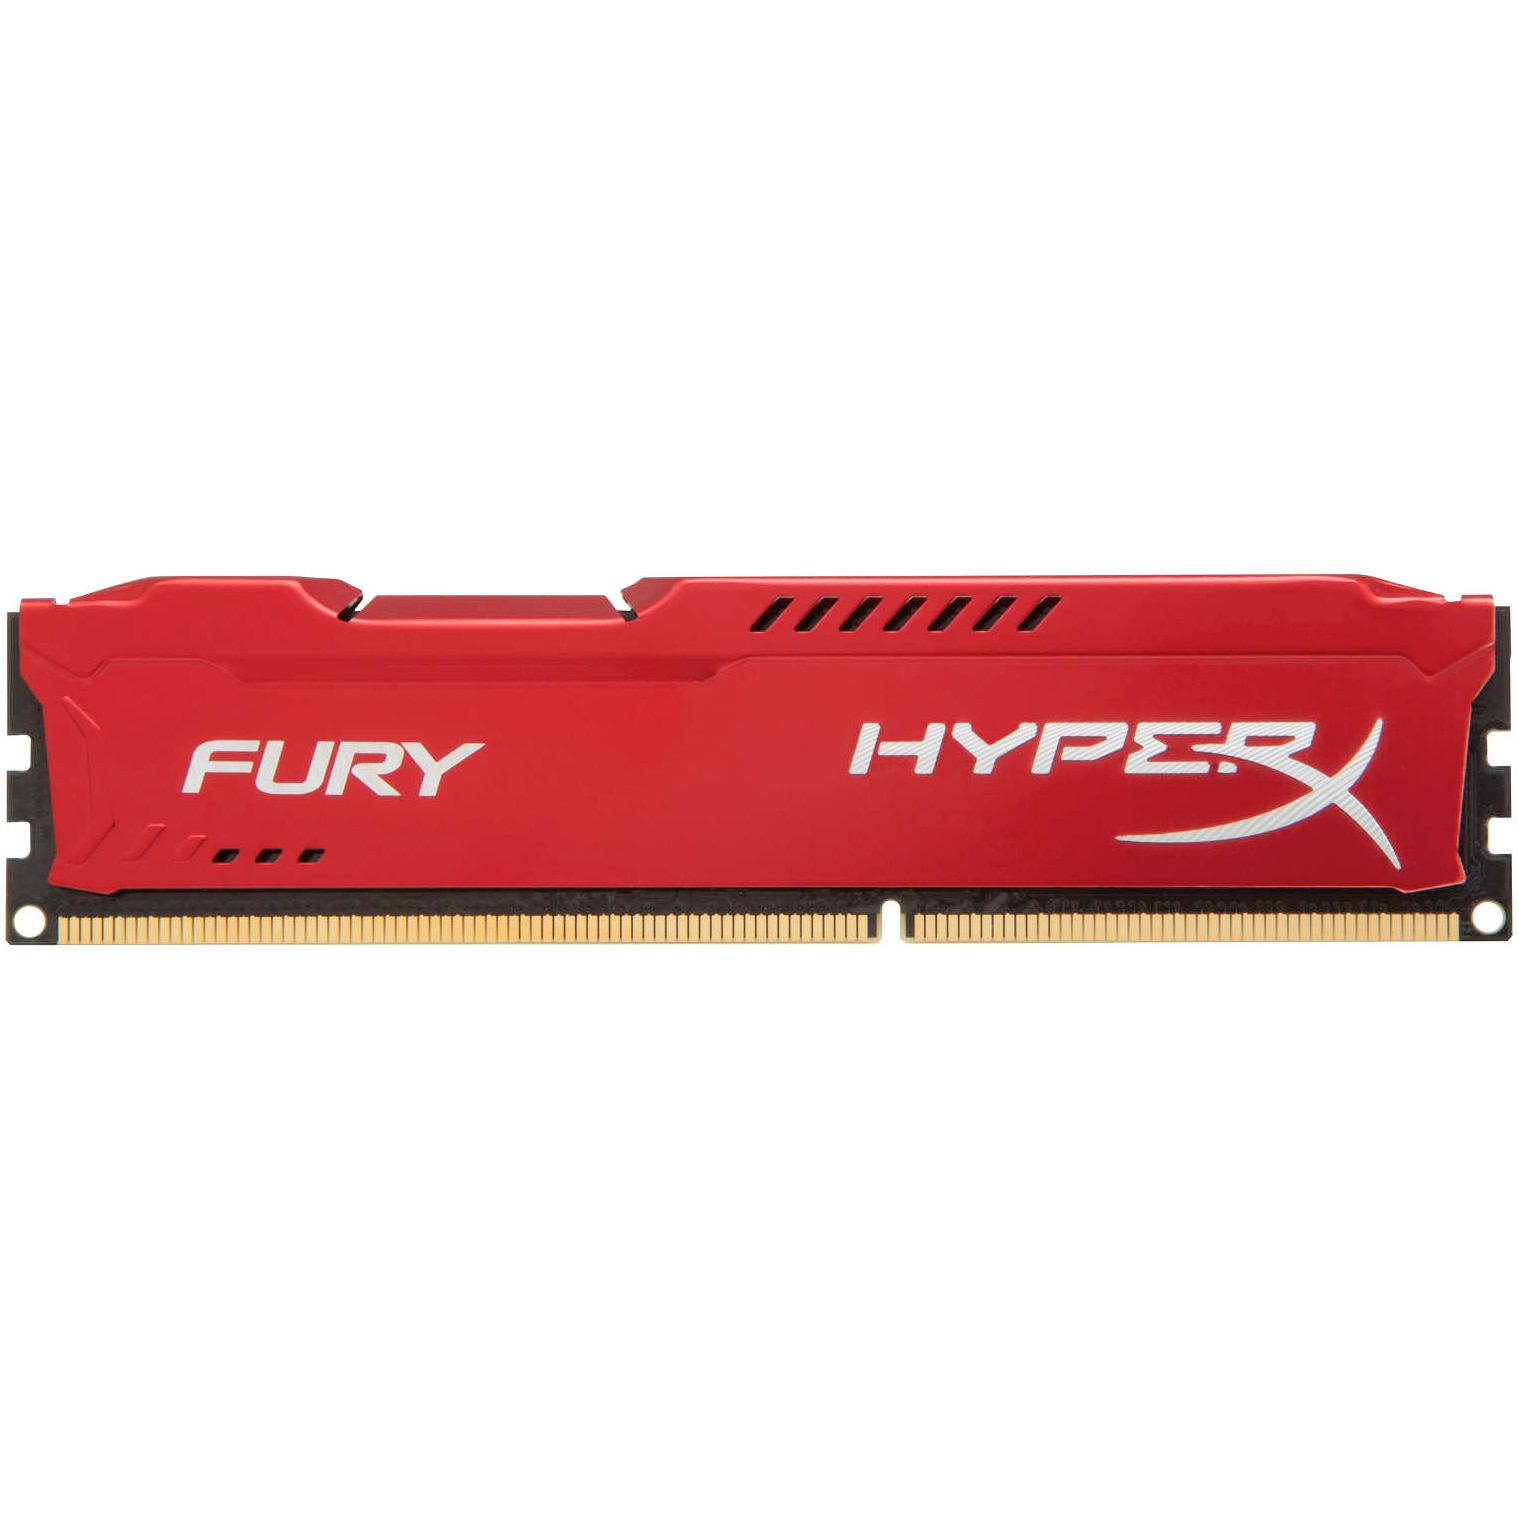 Fotografie Memorie HyperX FURY Red 4GB, DDR3, 1600MHz, CL10, 1.5V